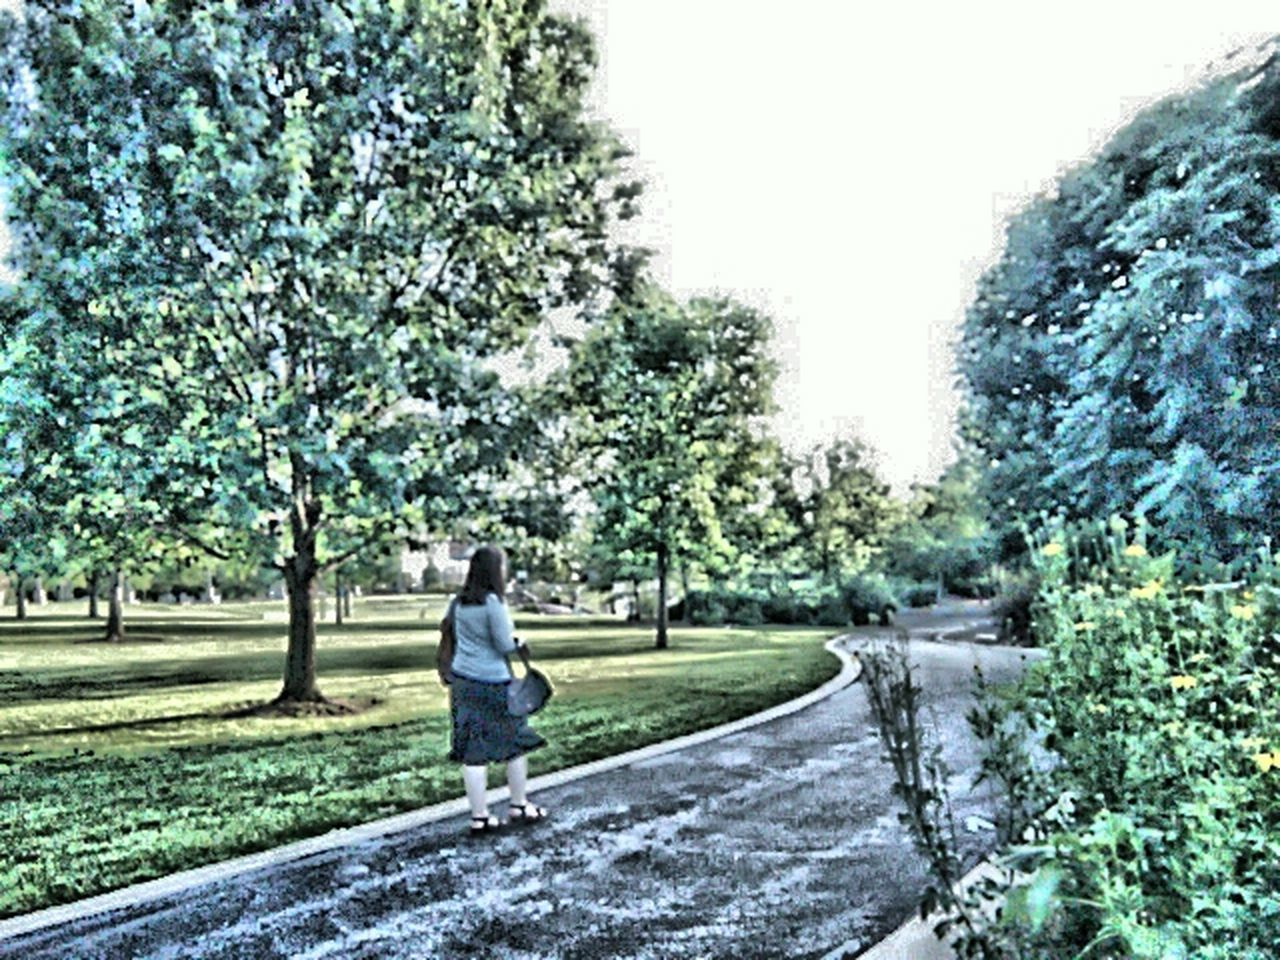 A little lady strolling down a wandering path... Woman In Phases Women With Curves Female Form Park Life Eyeemphotography Fresh On Eyeem  Day At The Park  Hdr Camera Landscape_Collection HDR Streetphotography Parks And Recreation Parkscapes Eyeem People Watching Hdriphonegraphy Eyeem Market Path In Nature Pathswewalk Path To Nowhere Eyem Best Shot - My World Hdr_gallery Showcase June EyeEm Gallery My Point Of View Eyeem Trending Popular